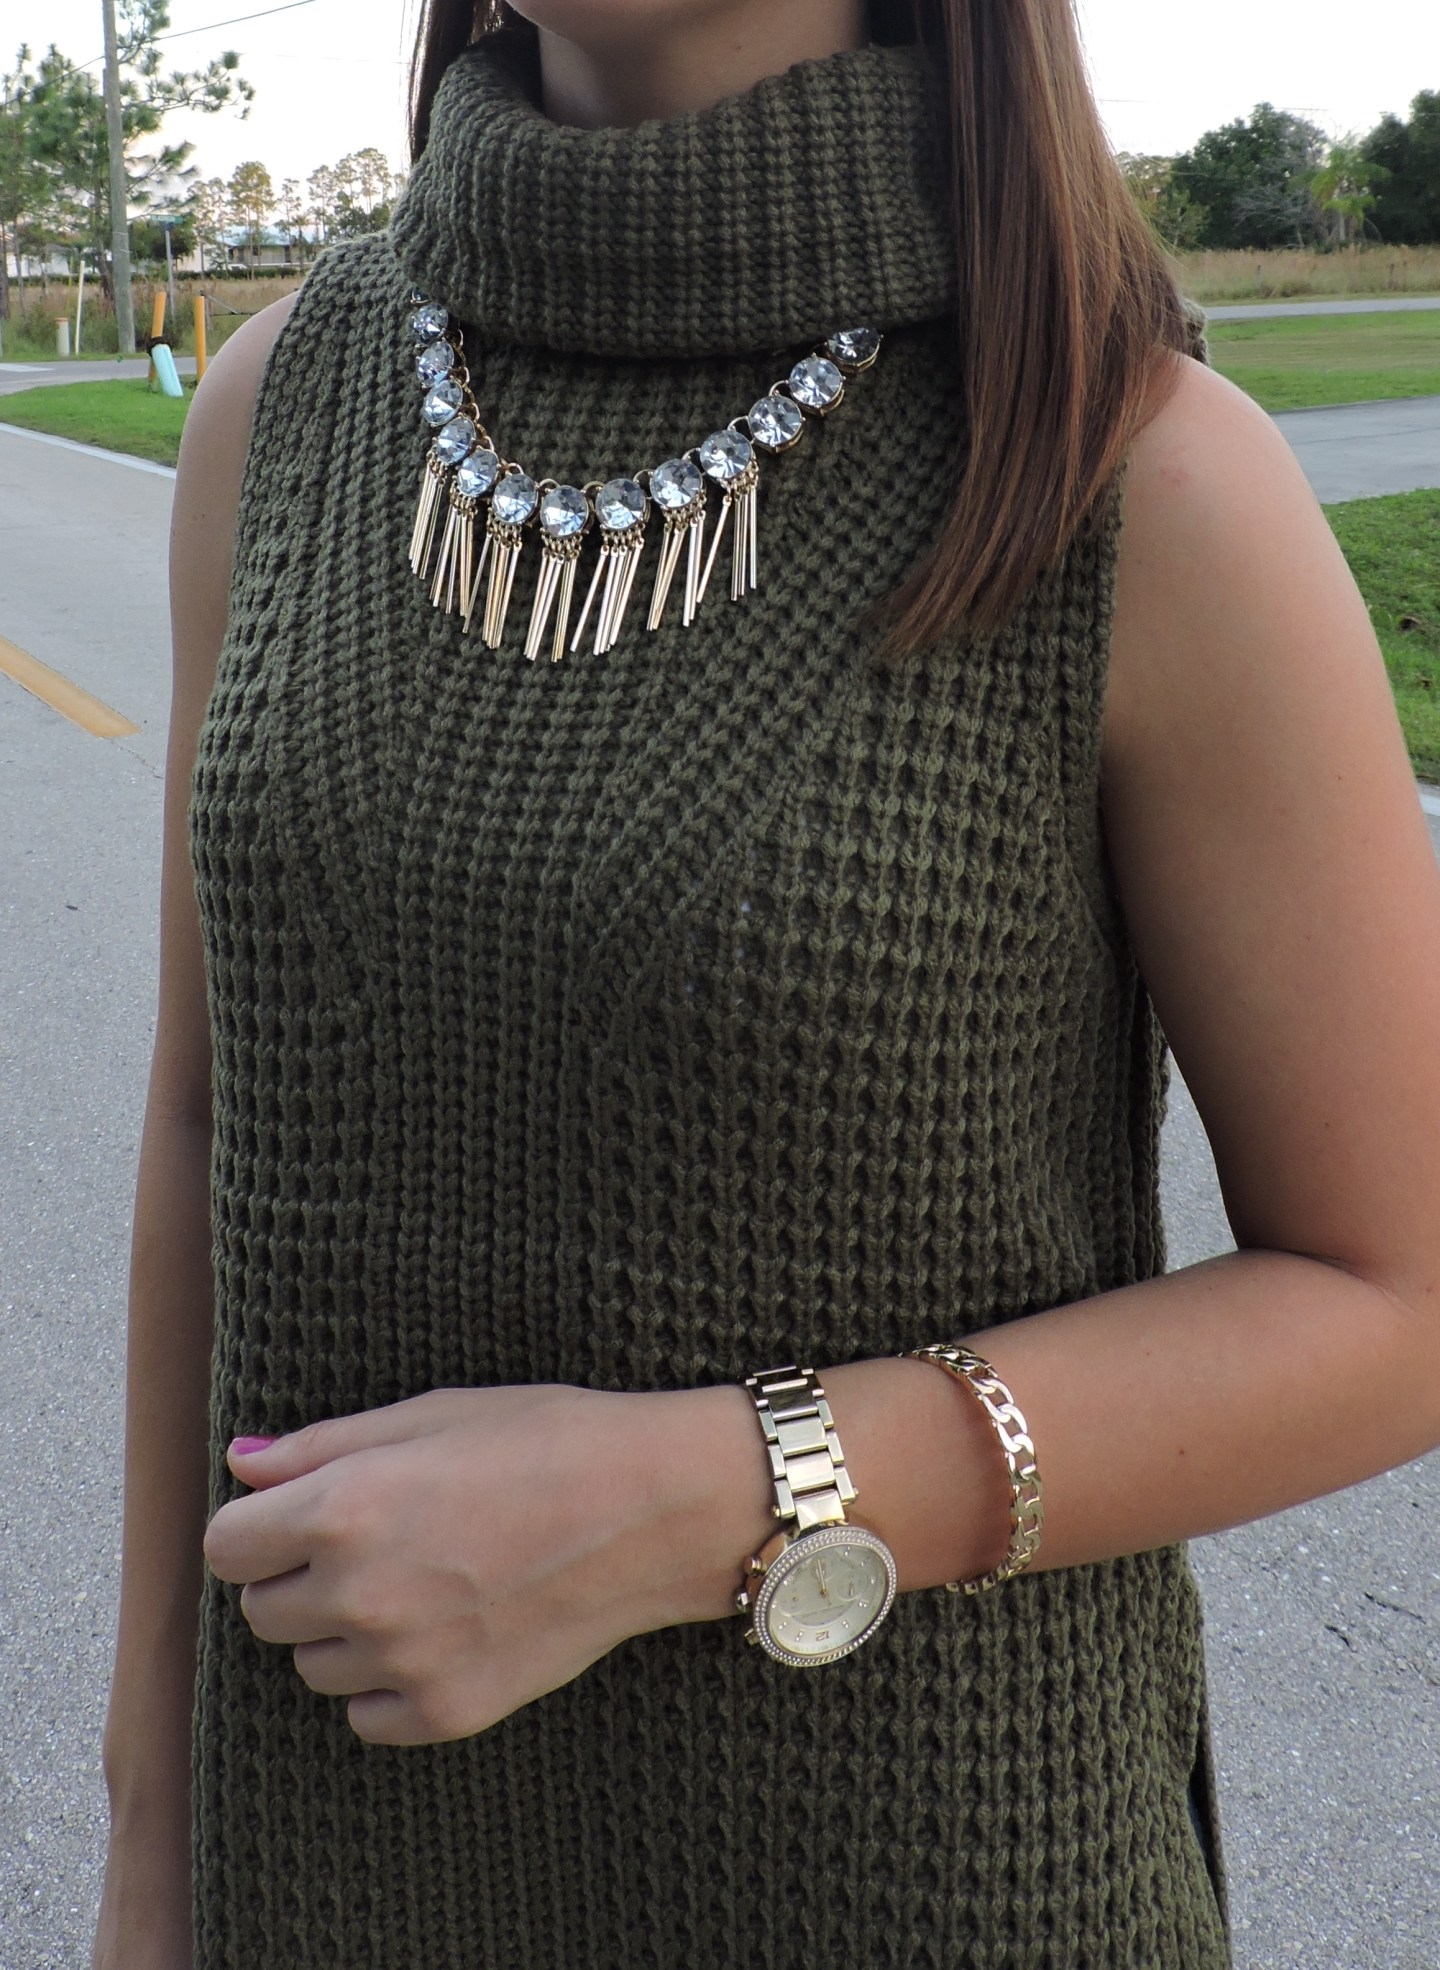 DSCN0190 - Statement Necklace With Turtleneck by Florida fashion blogger Absolutely Annie